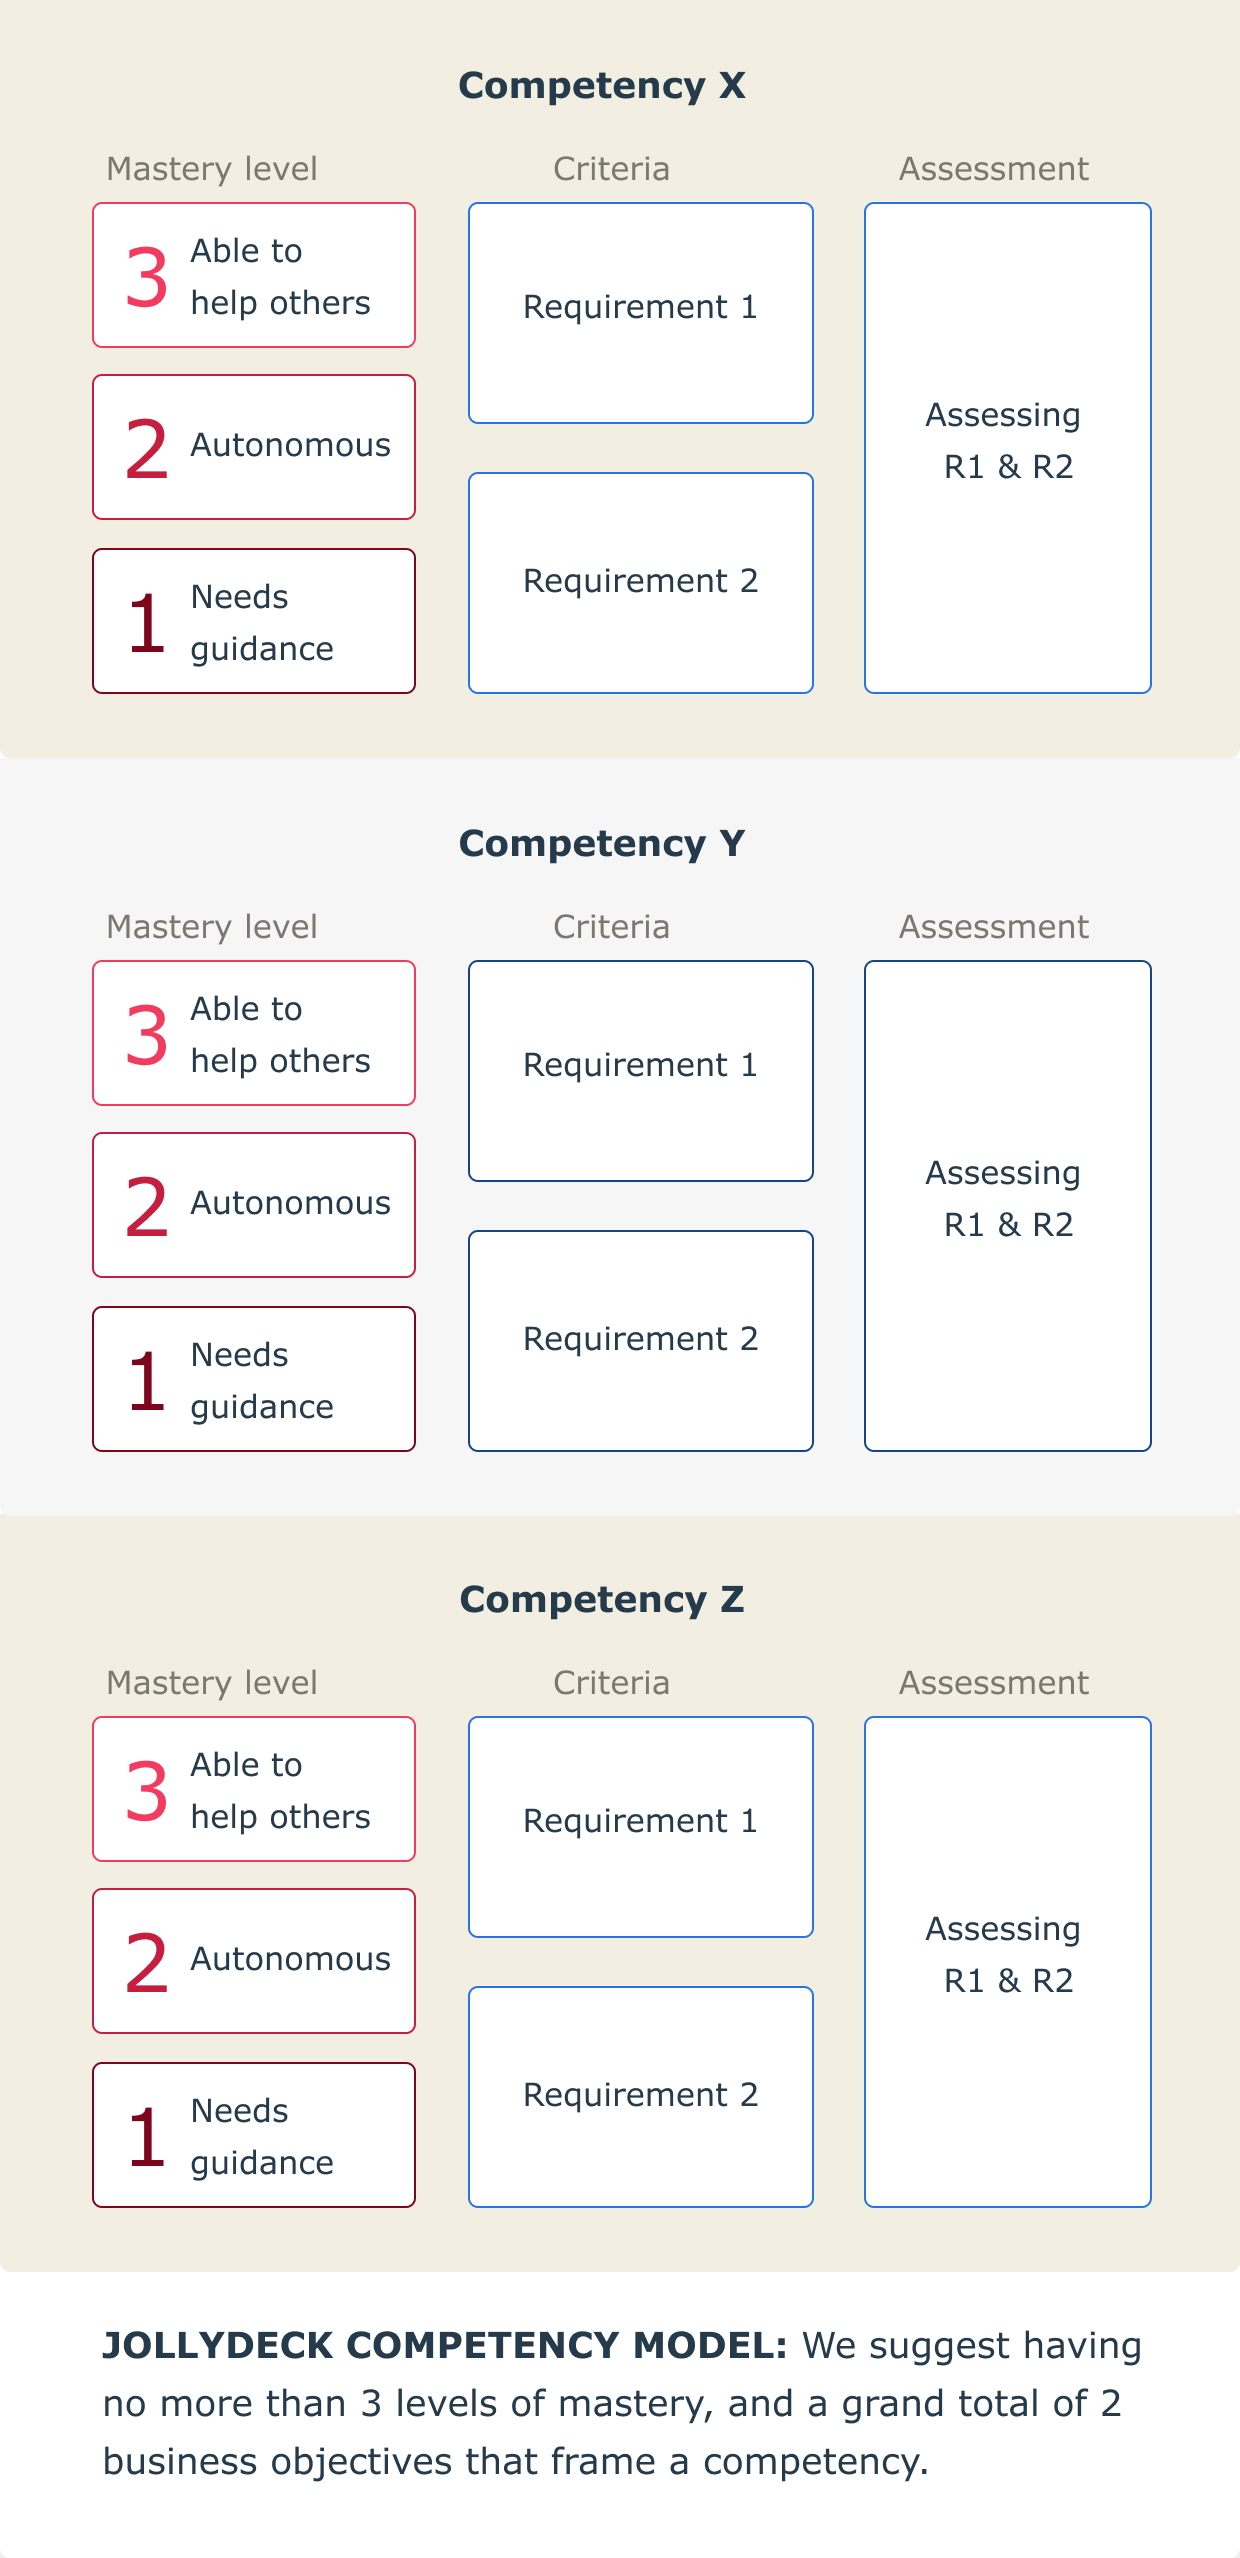 Alternative competency model